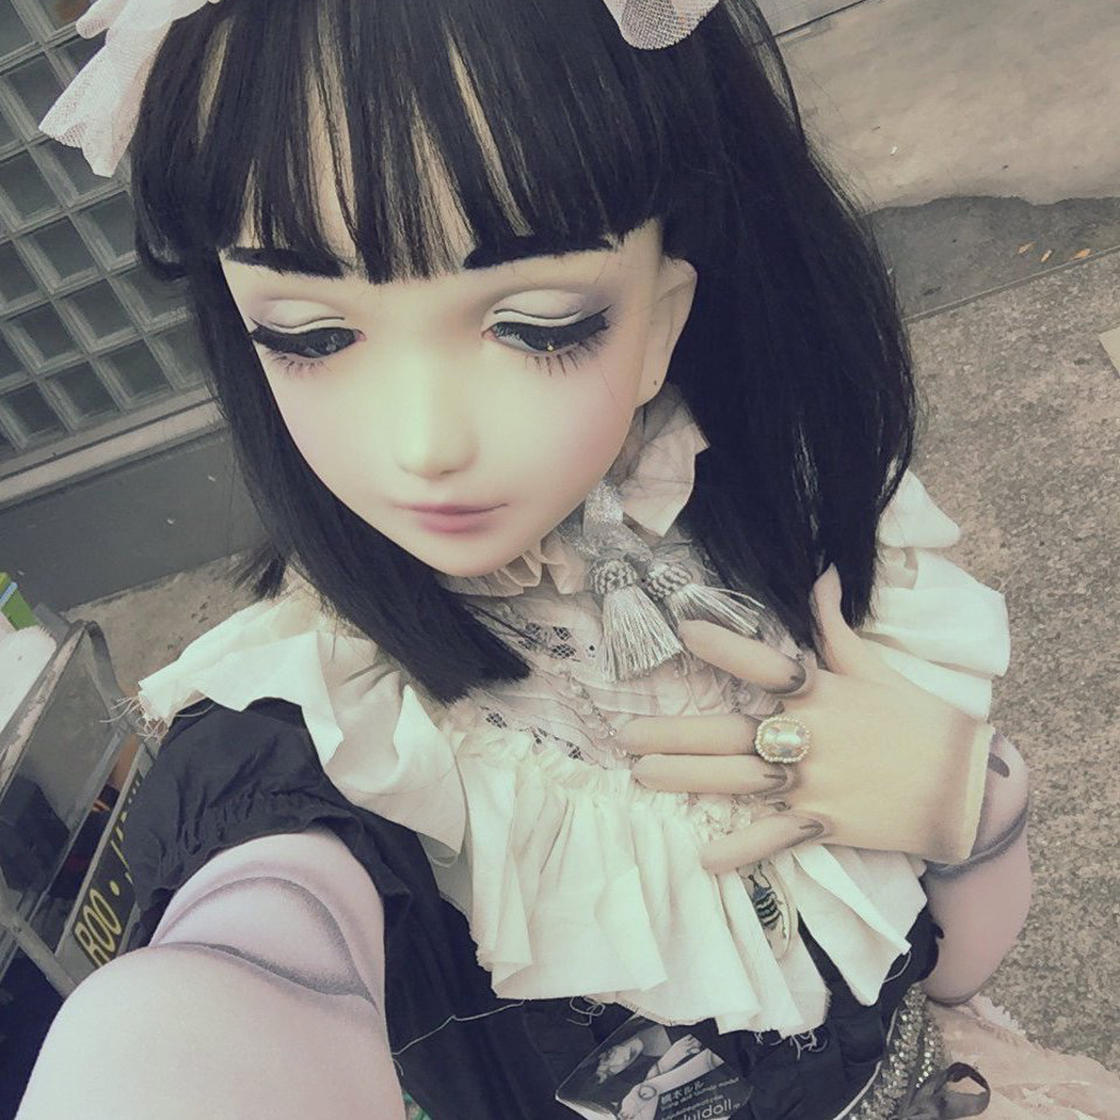 This Japanese doll is alive, and it's pretty disturbing